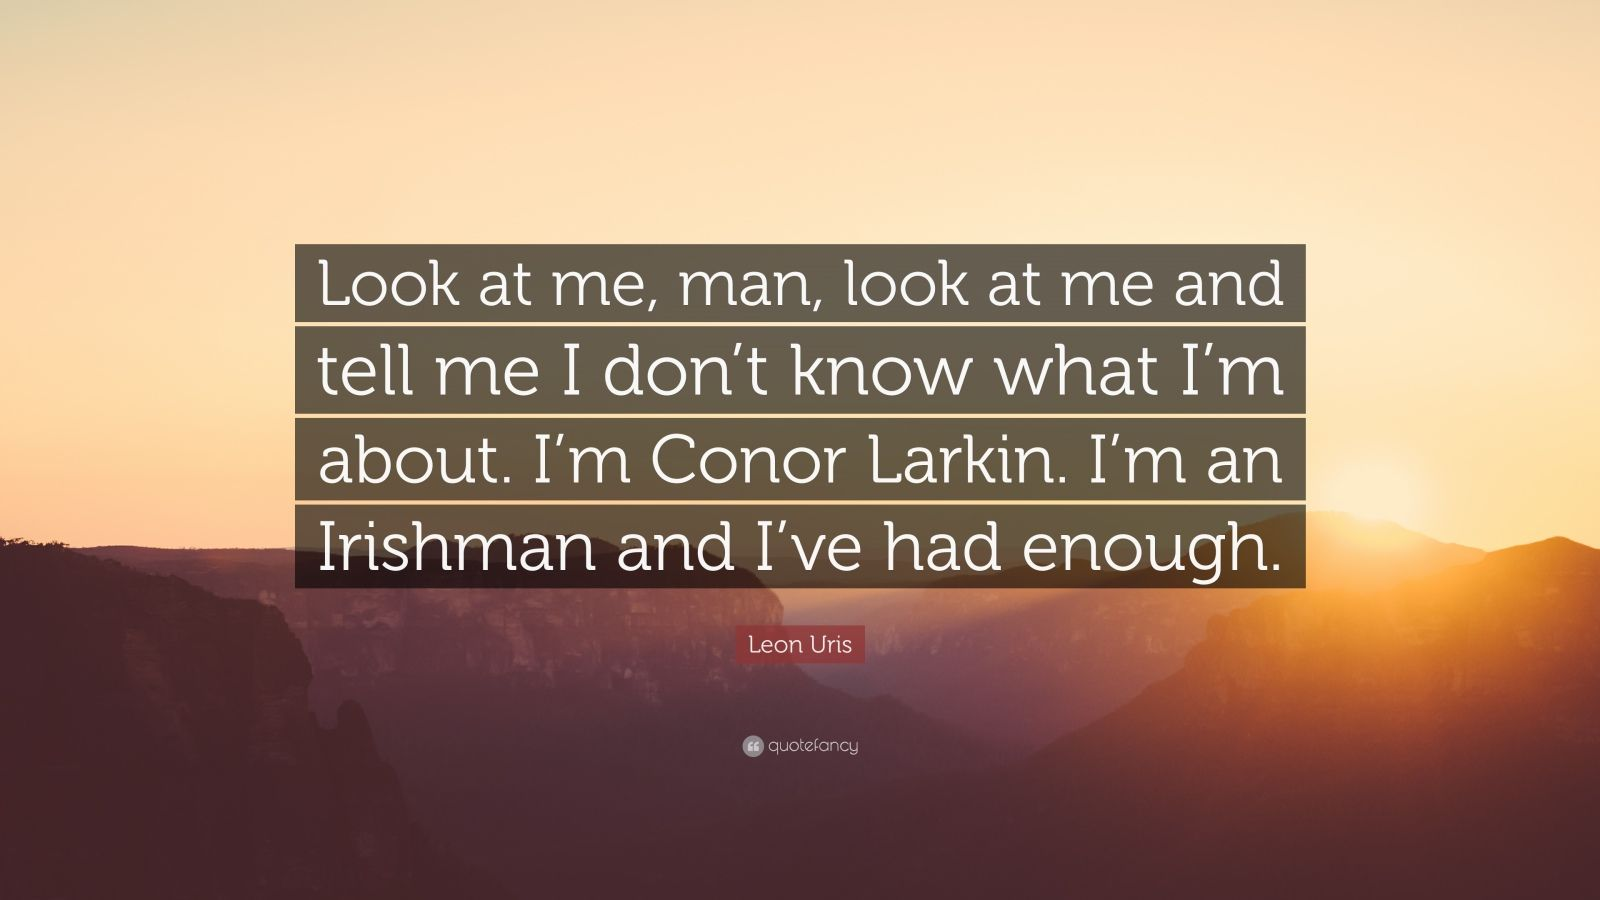 """Leon Uris Quote: """"Look at me, man, look at me and tell me I don't know what I'm about. I'm Conor Larkin. I'm an Irishman and I've had enough."""""""